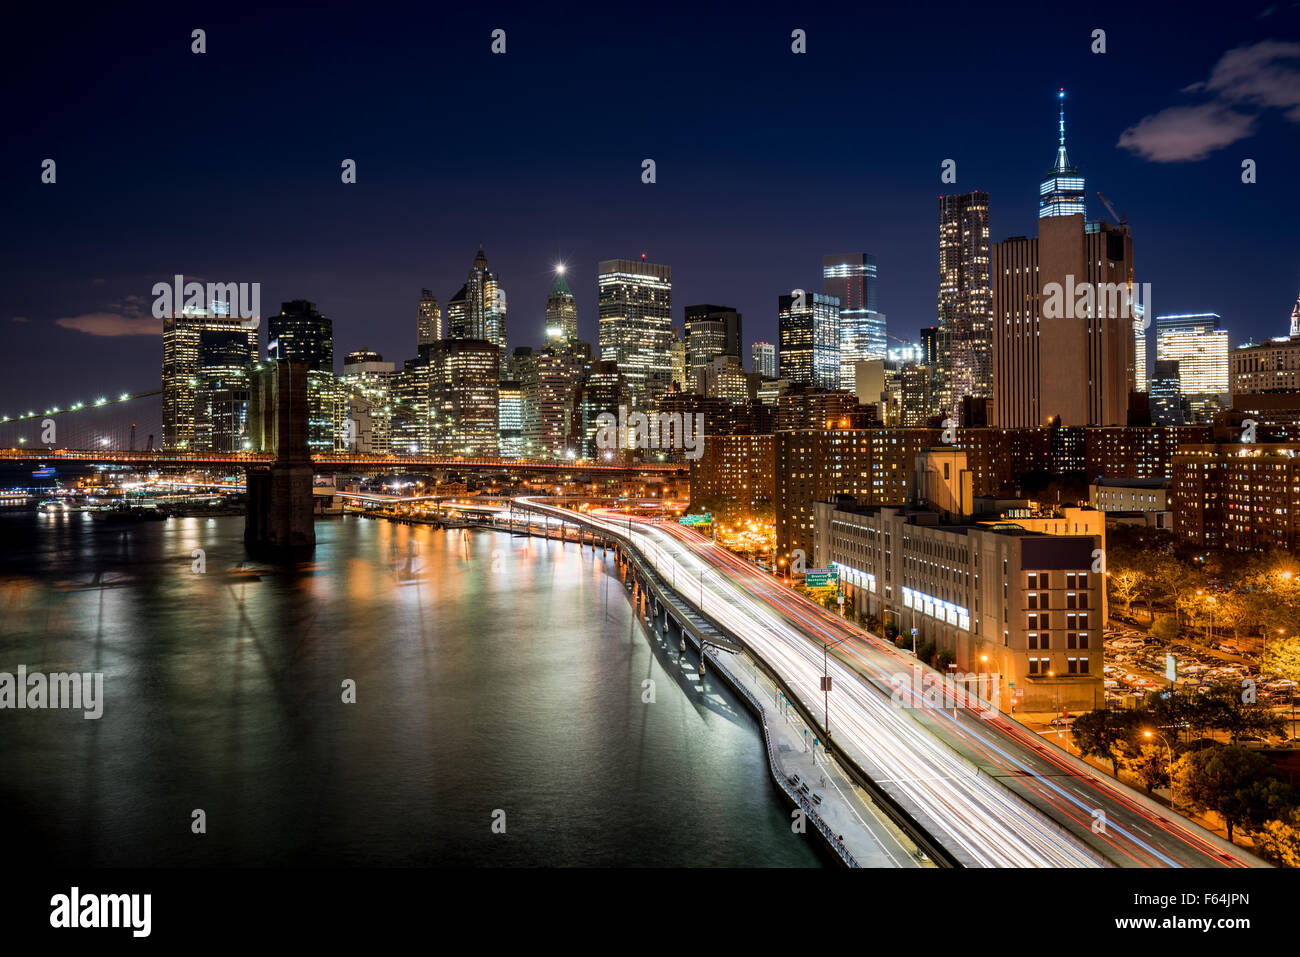 Stadtbild bei Nacht von Lower Manhattan Financial District mit beleuchteten Wolkenkratzern und World Trade Center. Stockbild